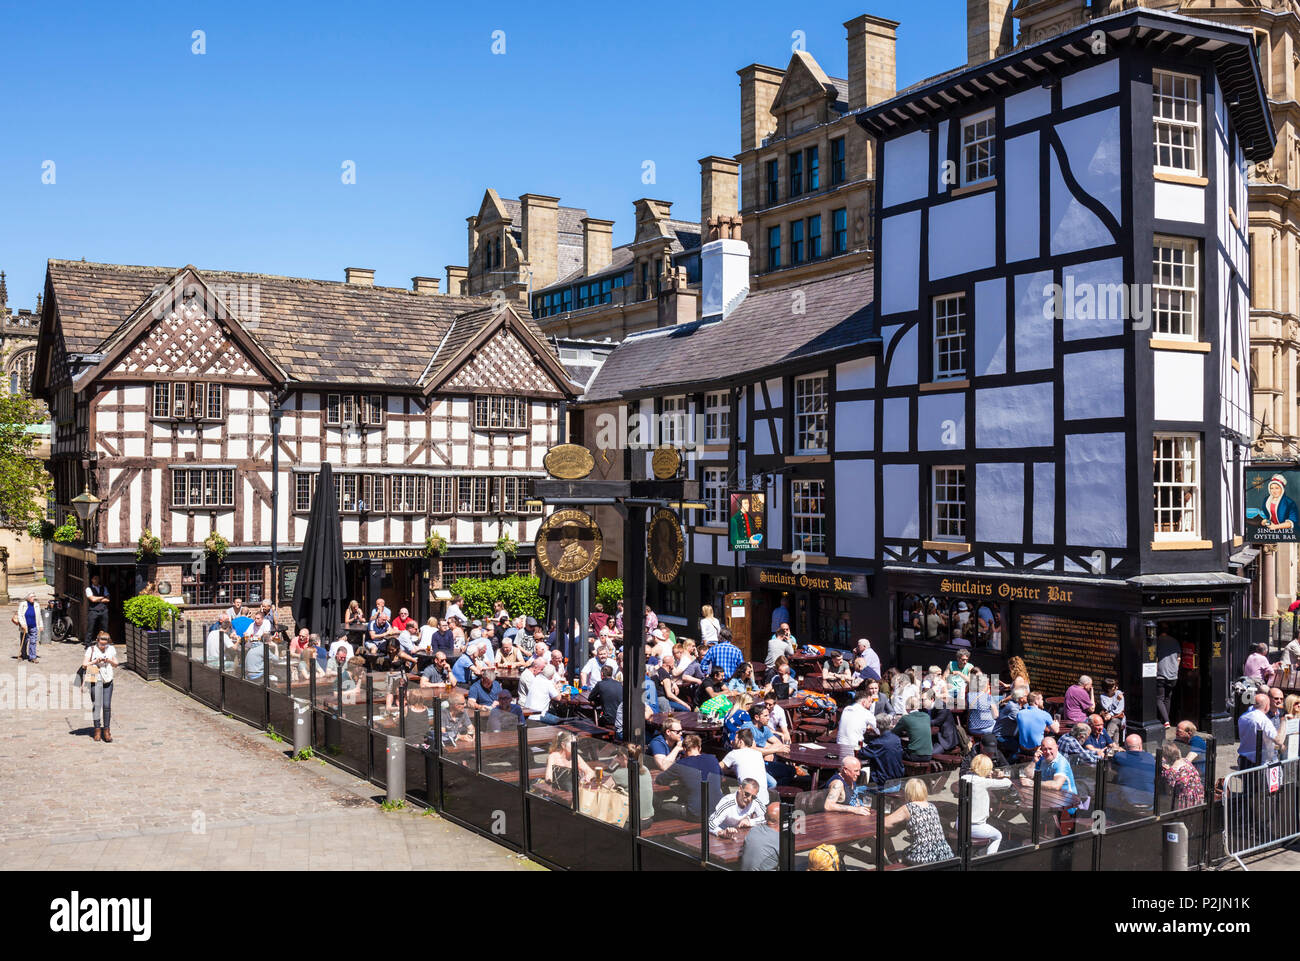 Crowded Sinclair's Oyster Bar and The Old Wellington public house Cathedral Gates Manchester City Centre England UK GB  Europe Stock Photo